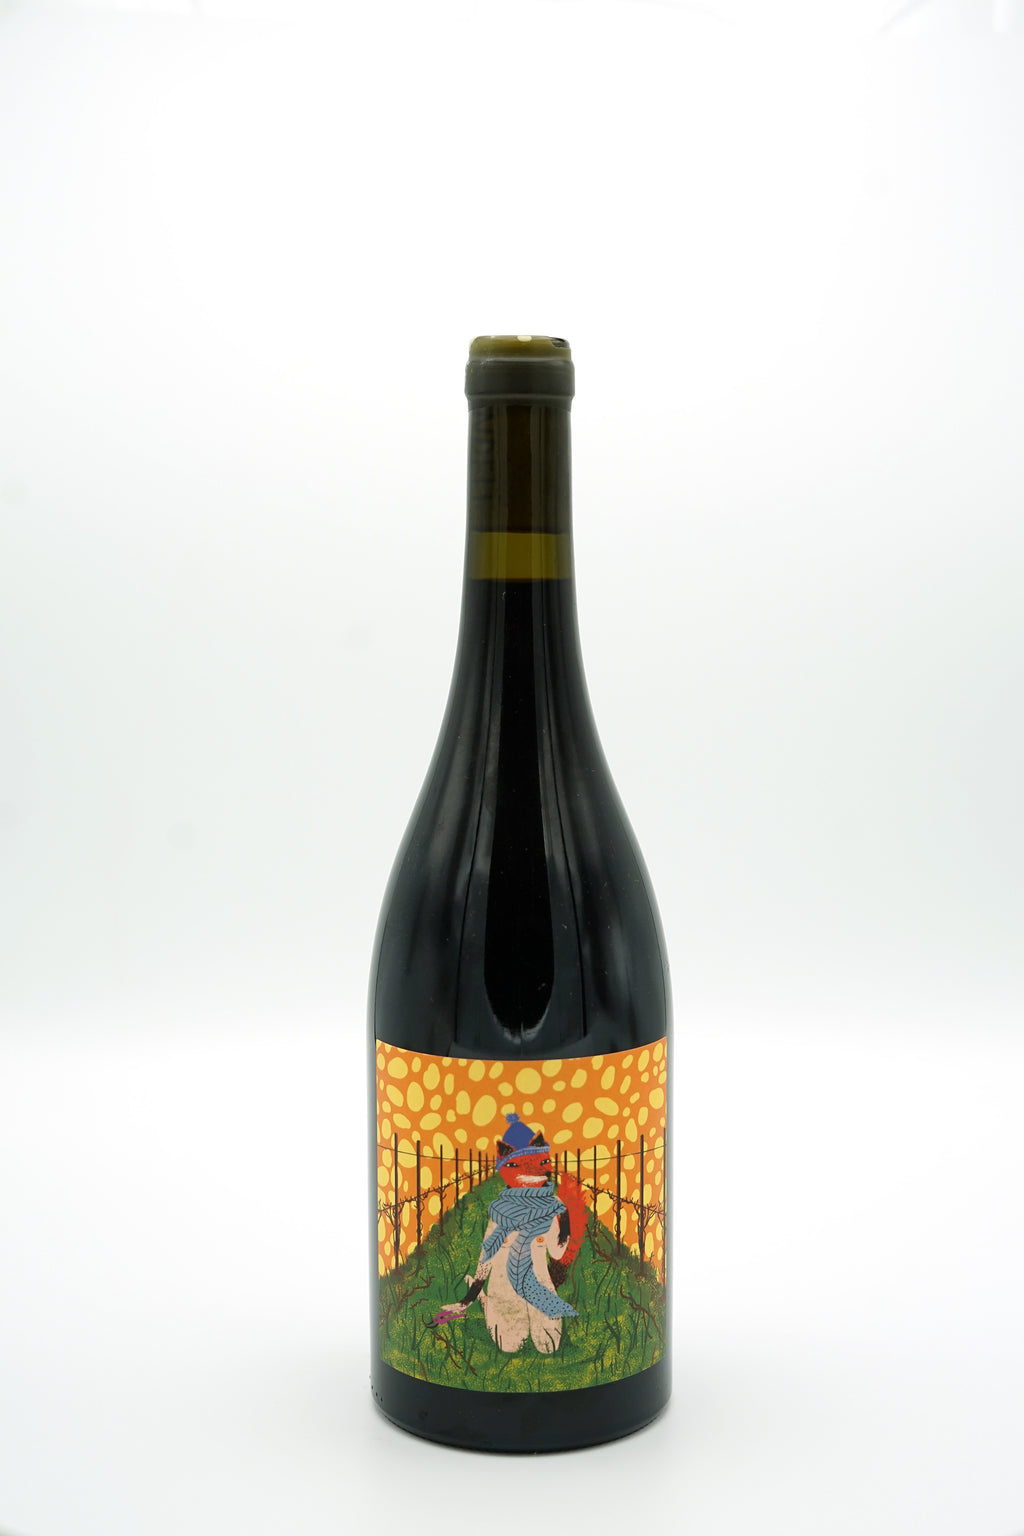 Kindeli Invierno 2019 - Alex Craighead Wines